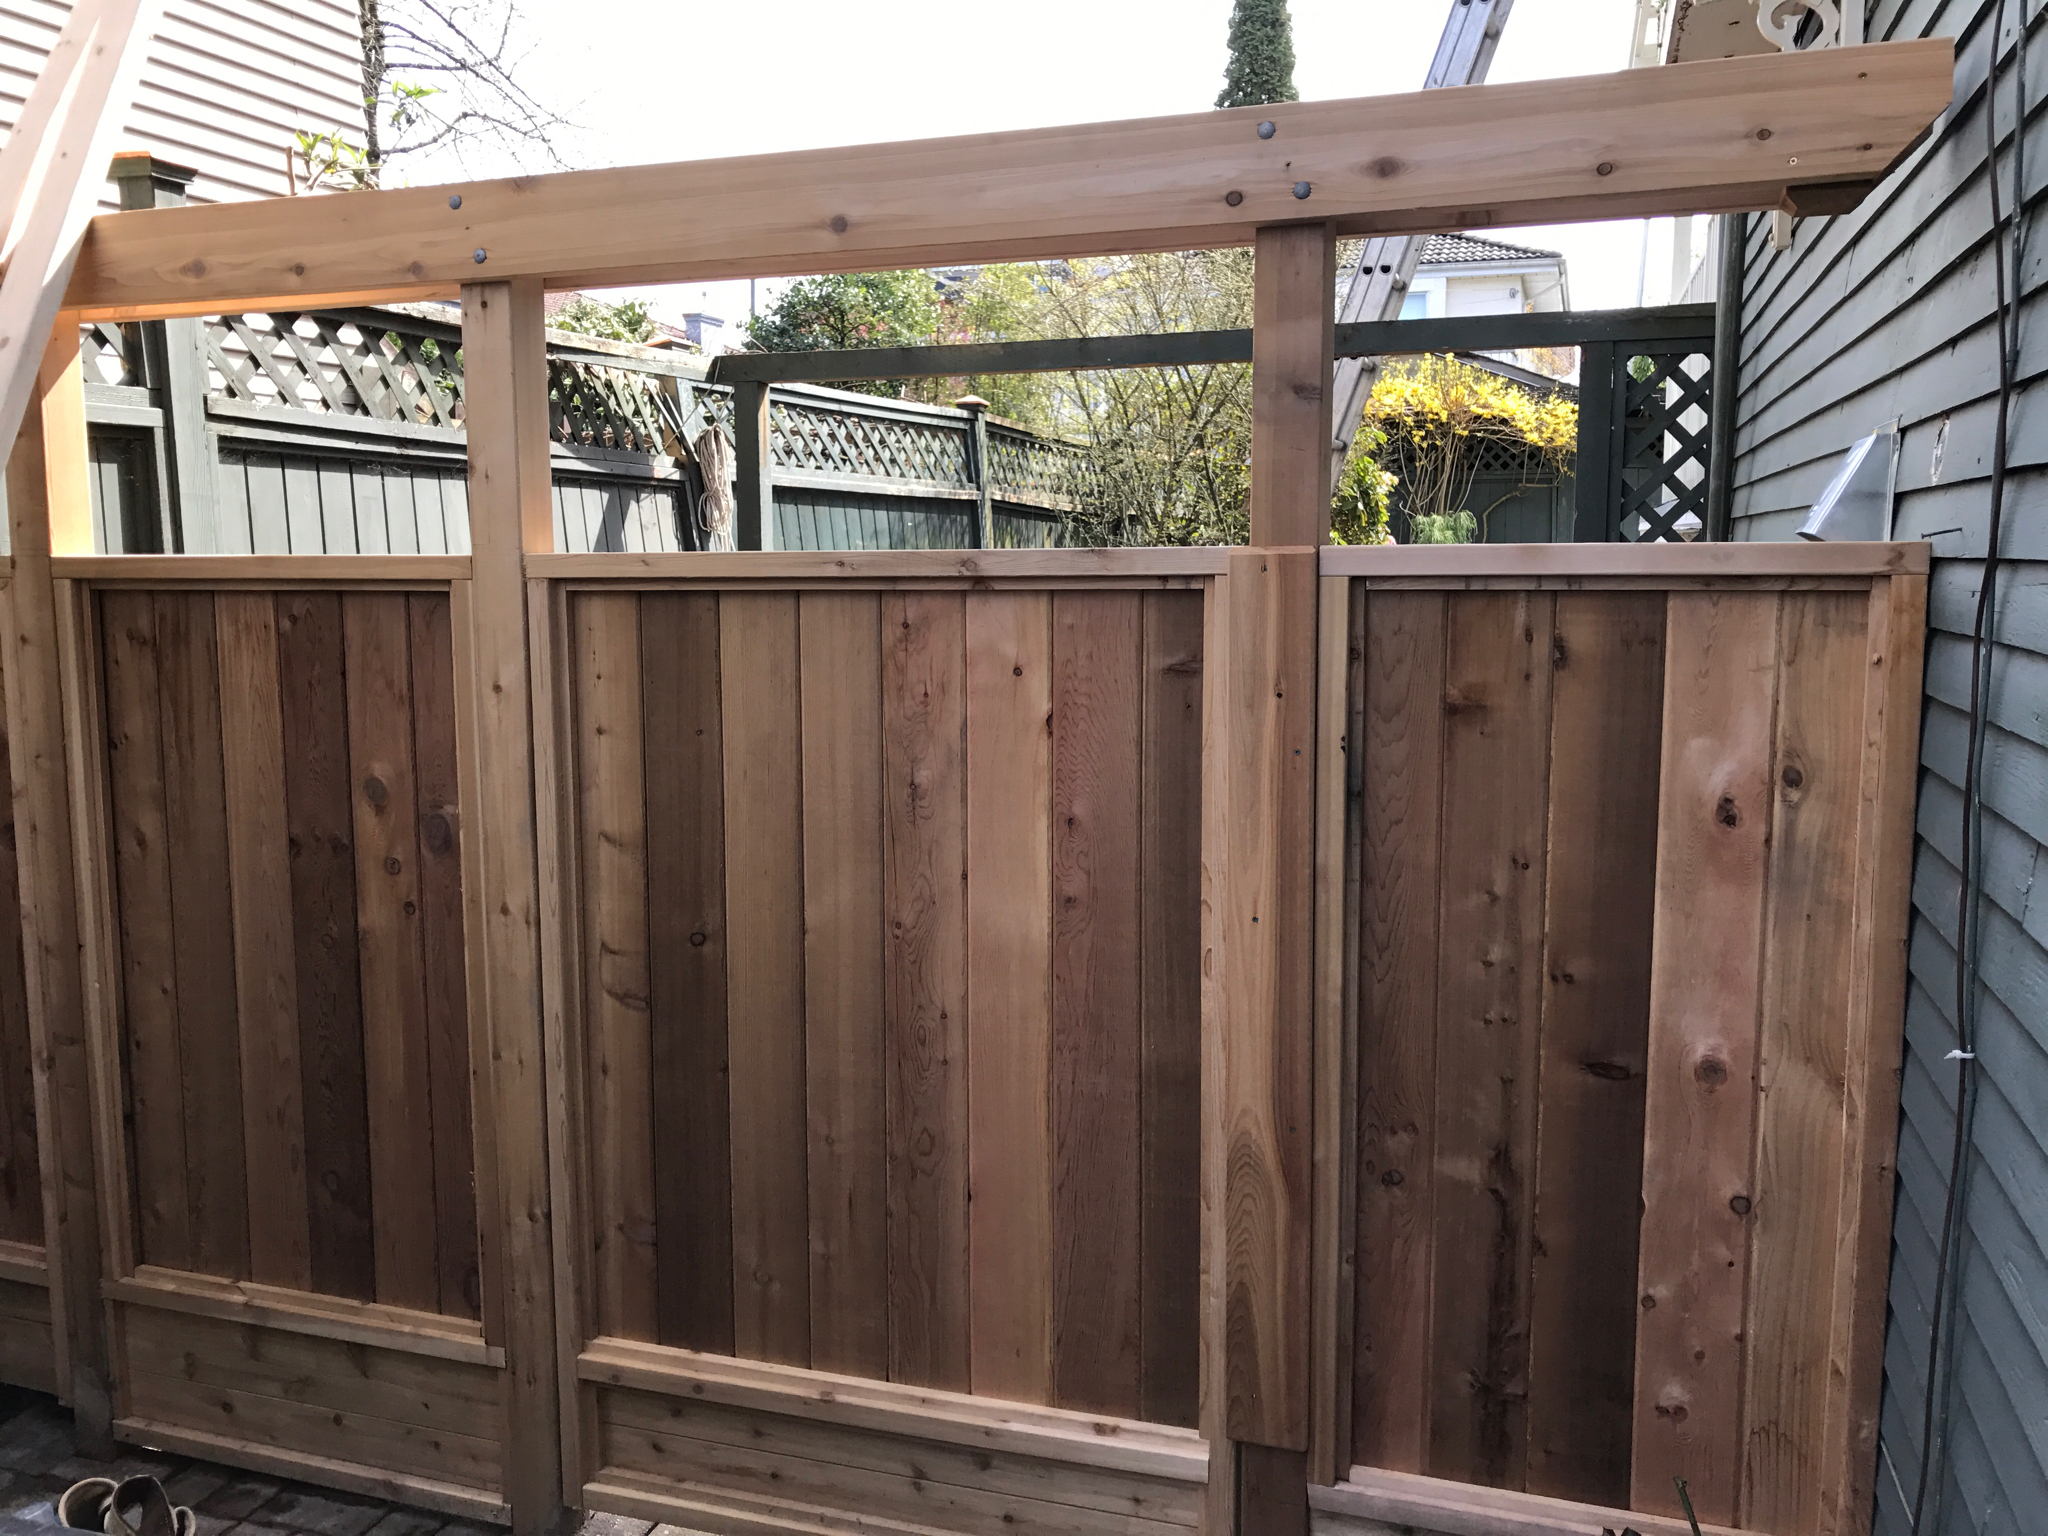 New entry to rear yard and pergola